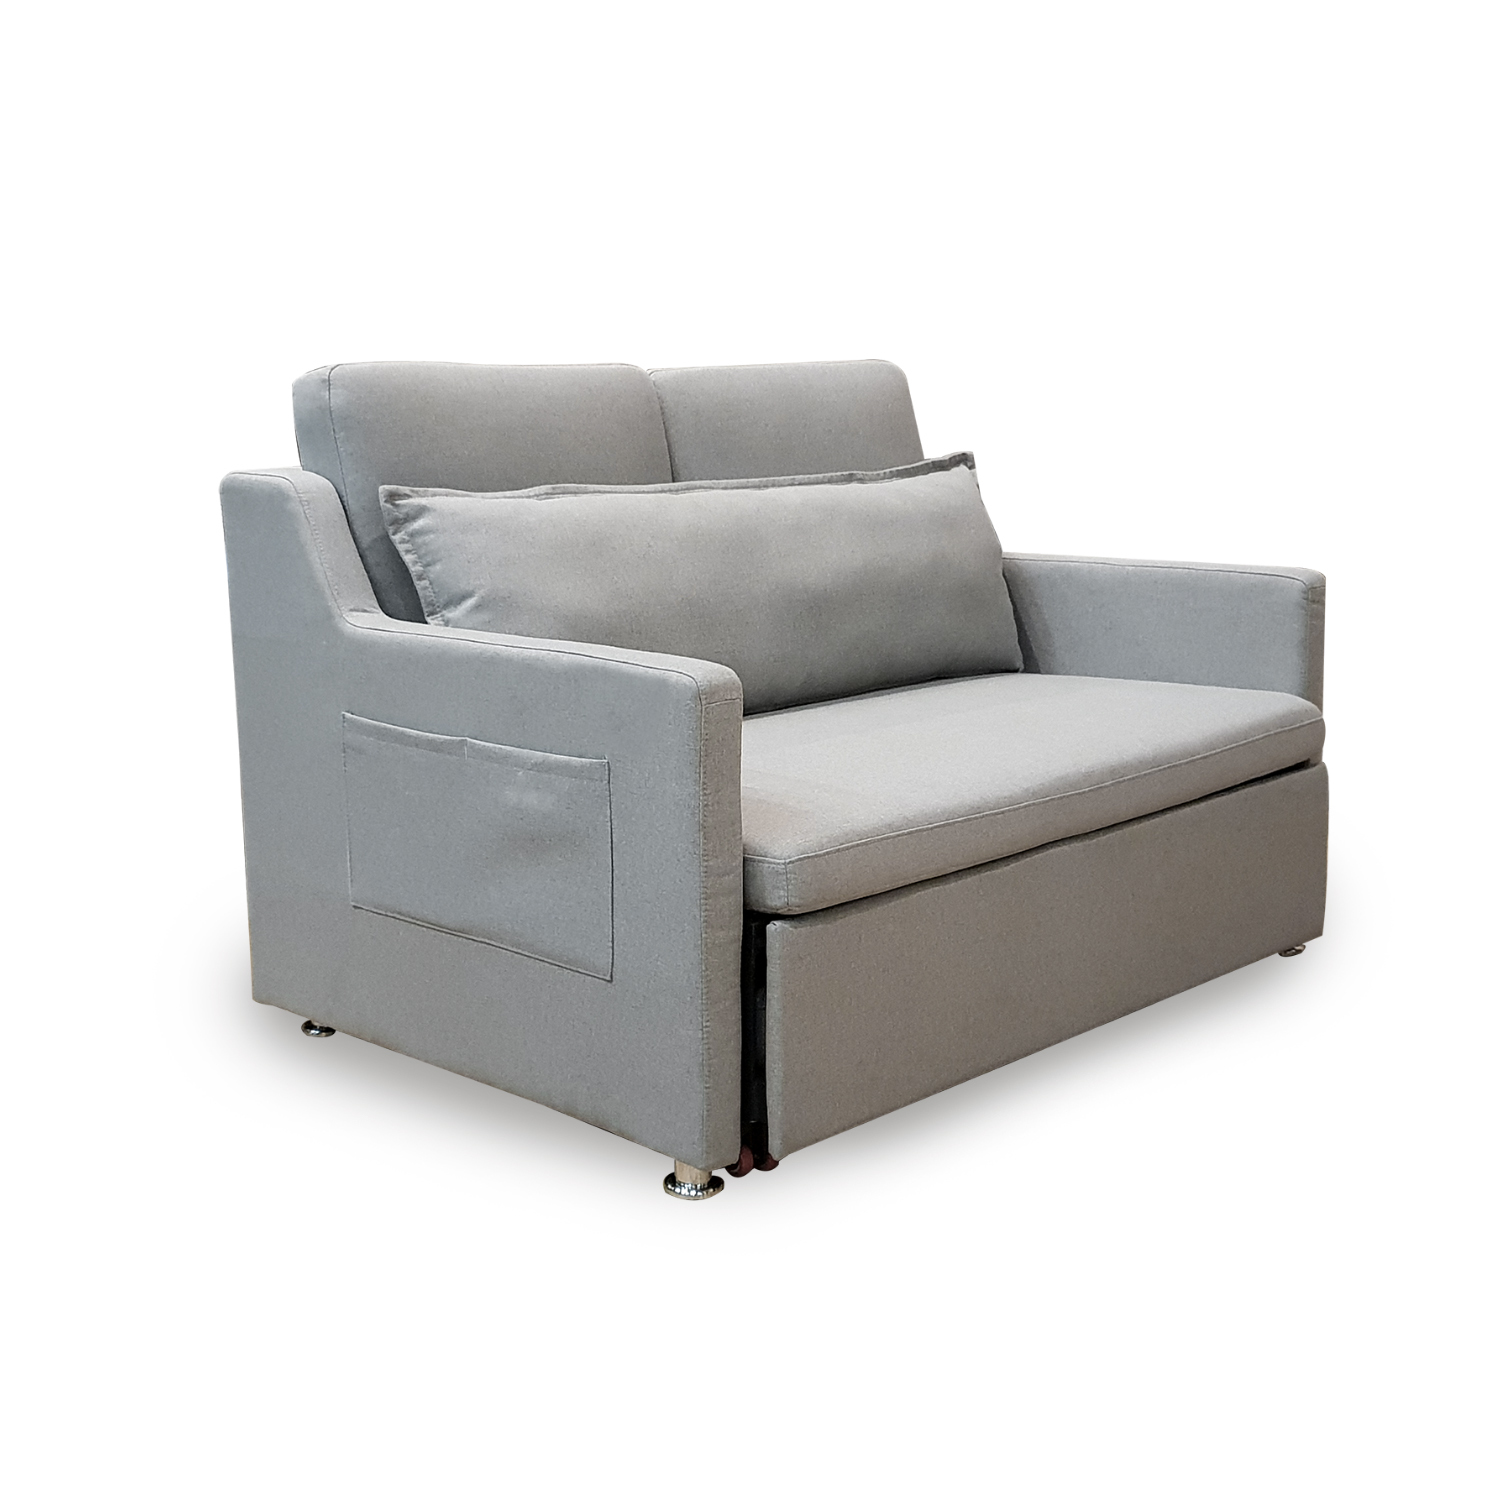 Sofa bed IR 1341.jpg